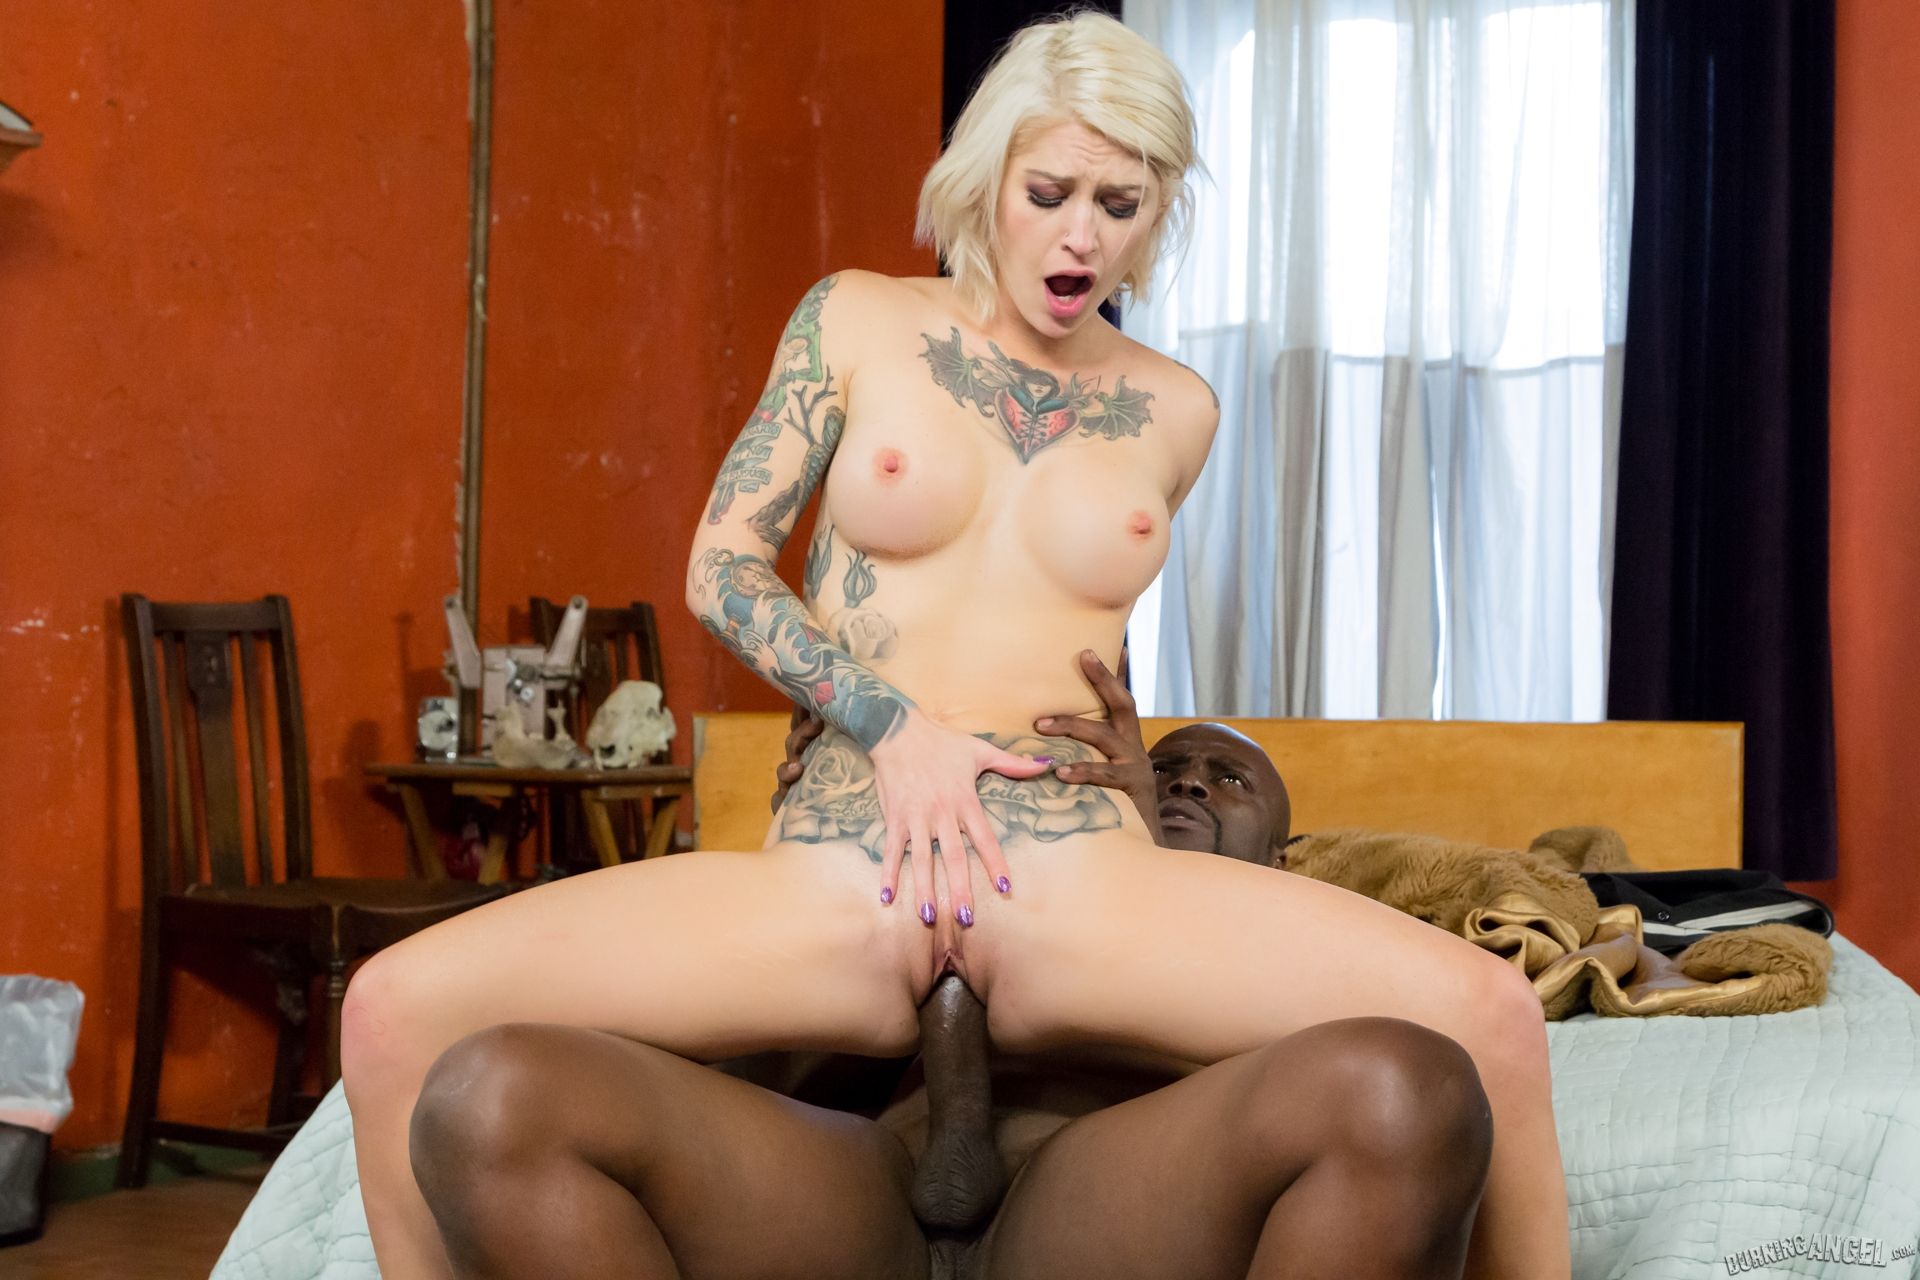 Lex steele amp friends in this amazing orgy 3